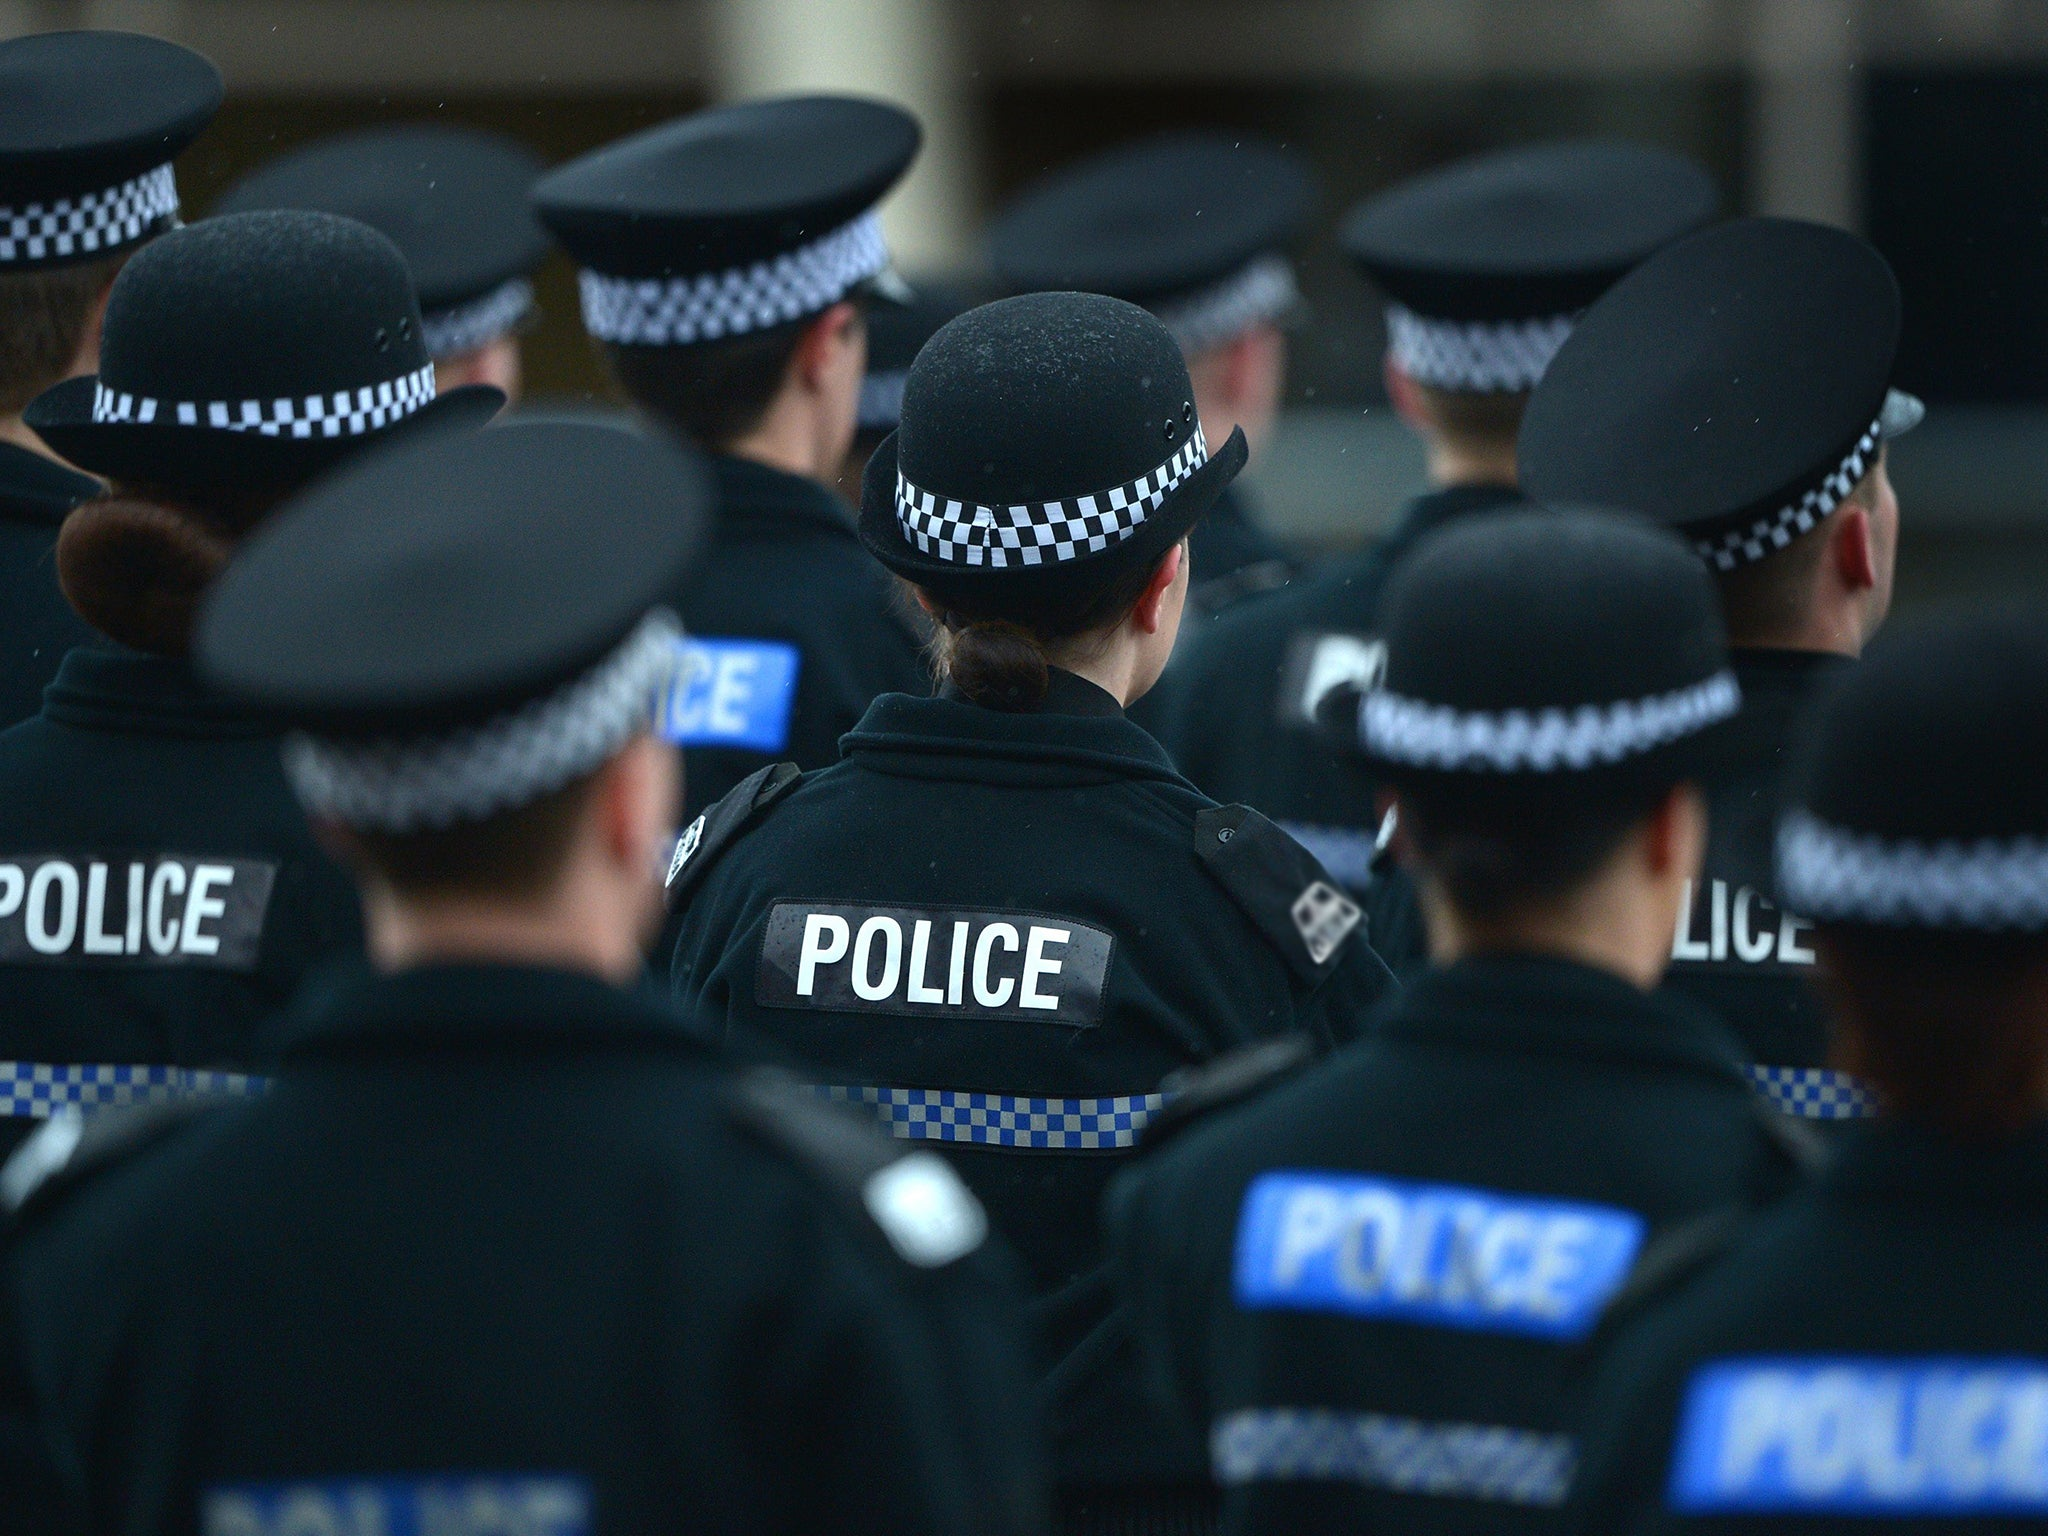 New Investigation After 2 000 Police Officers Are